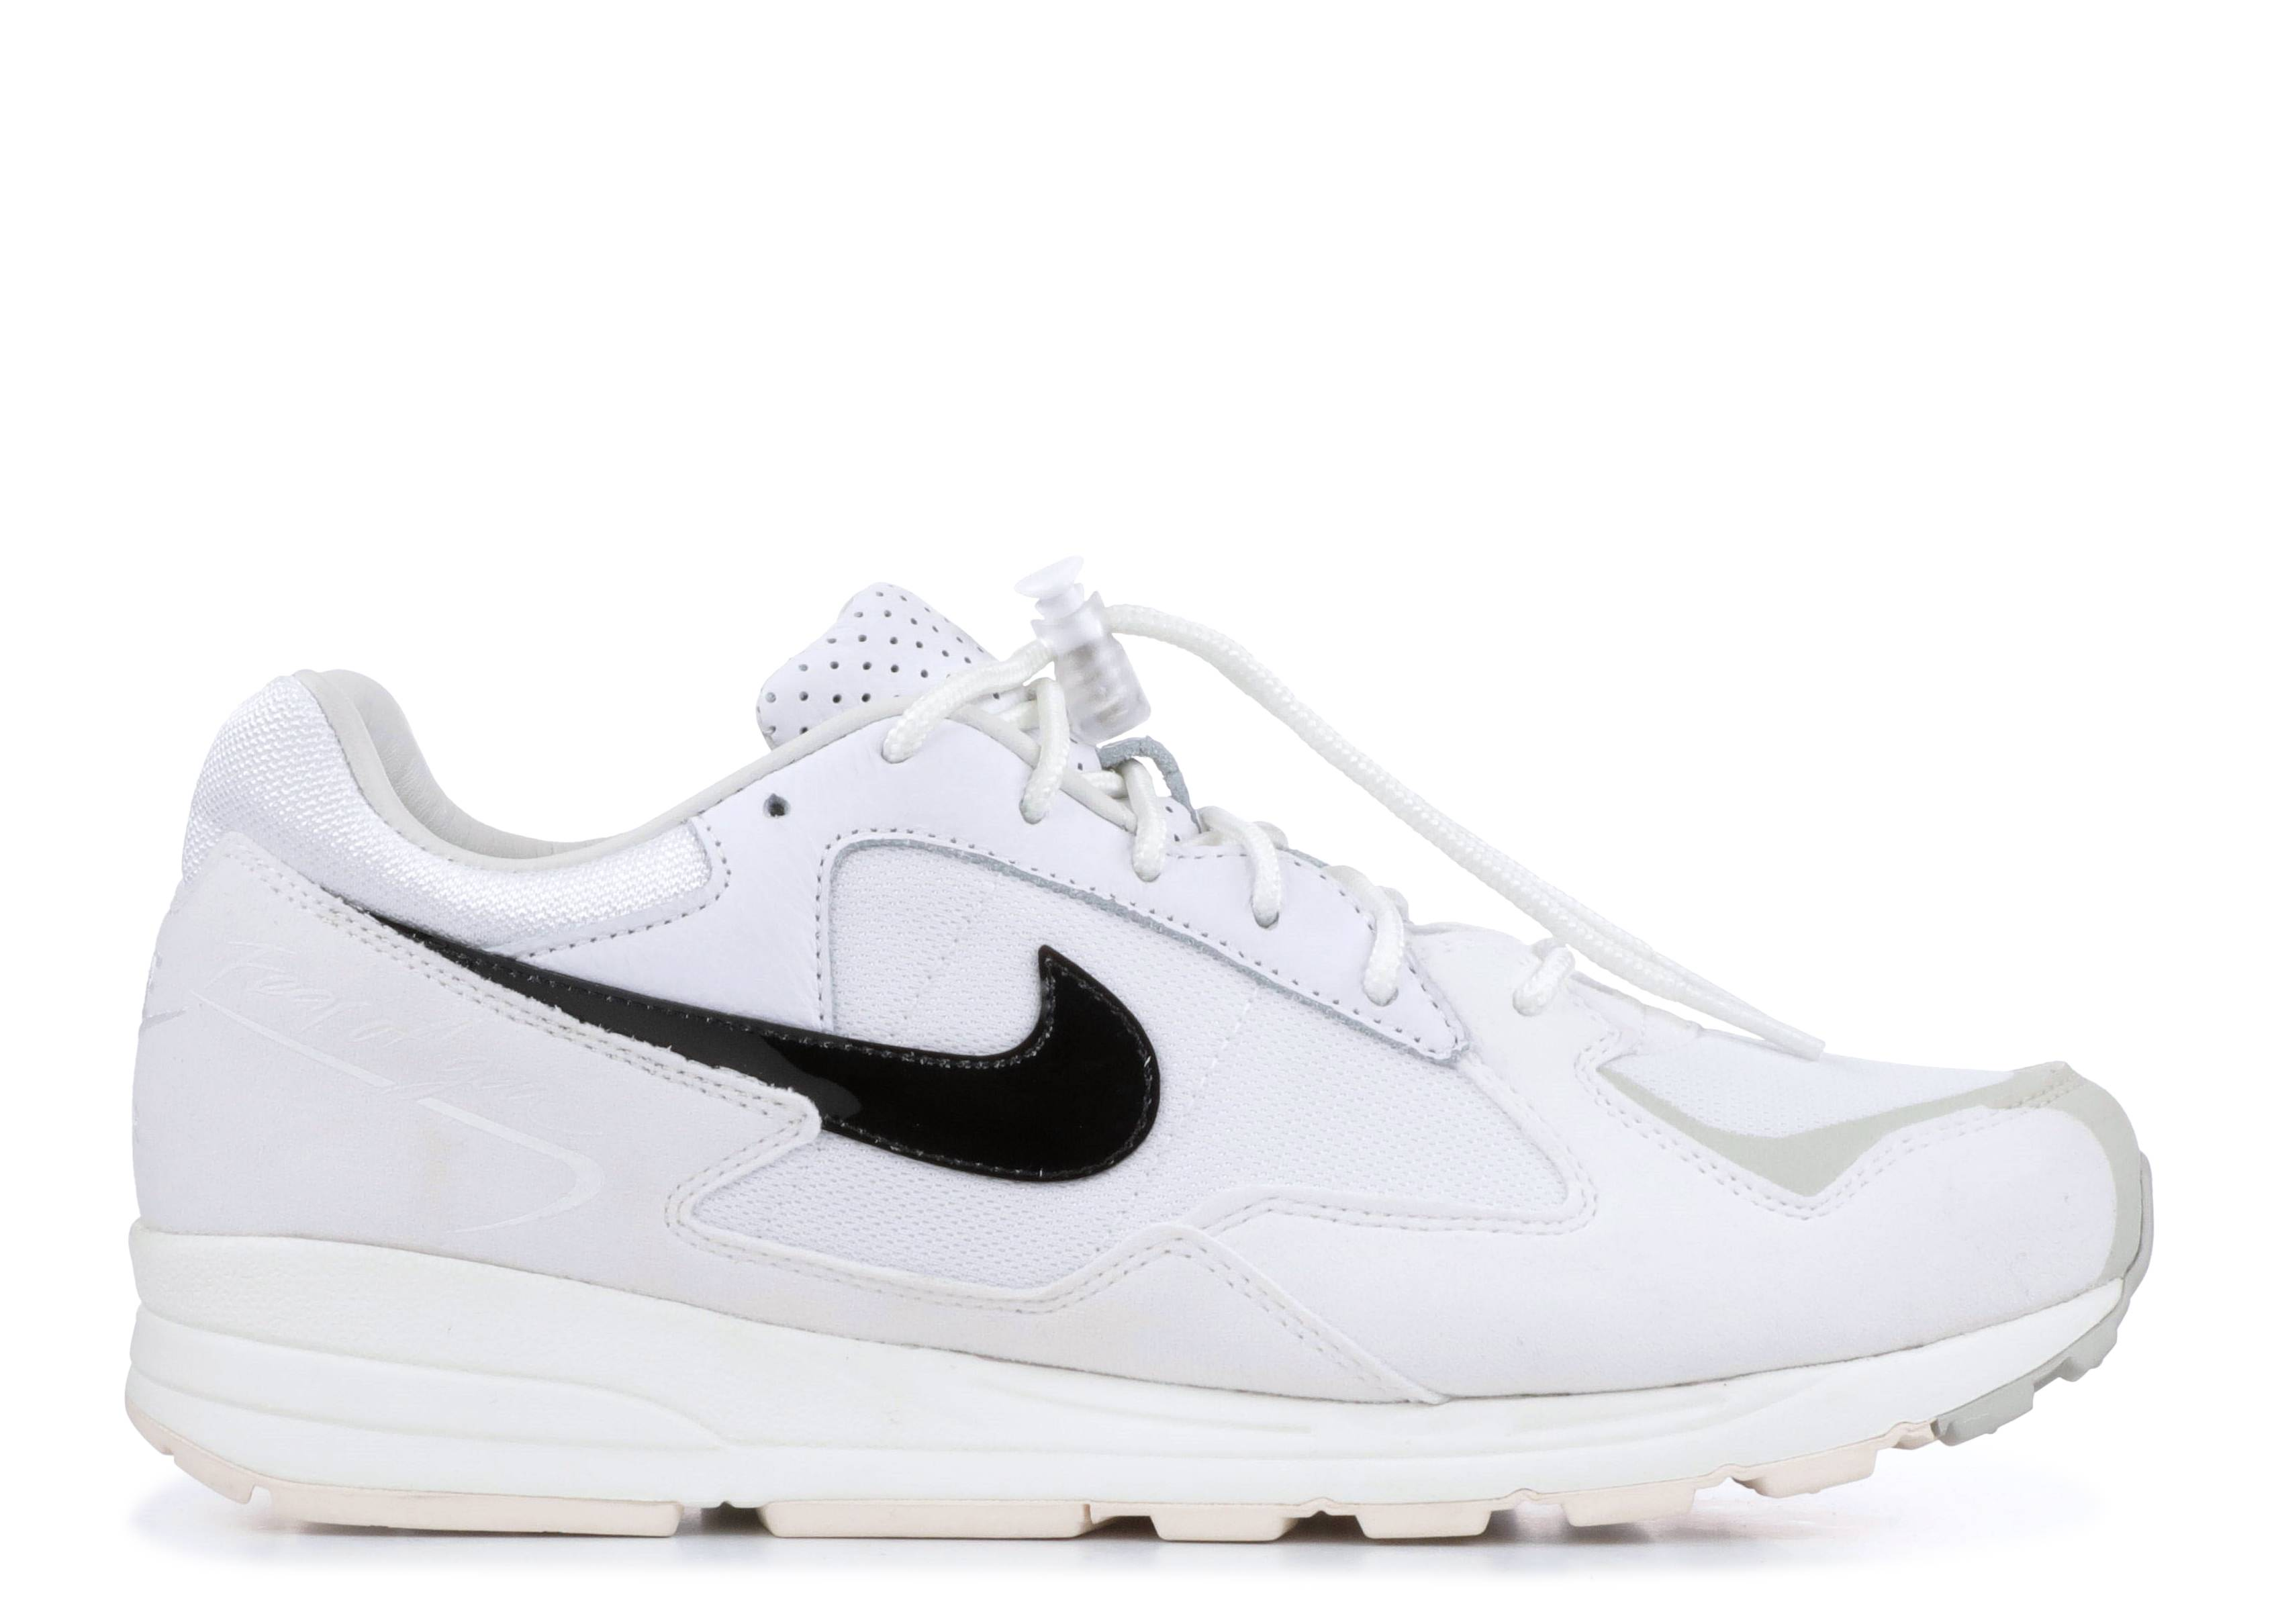 Nike Air Skylon II fog - Nike - bq2752 100 - white black-light bone ... 3e179475d